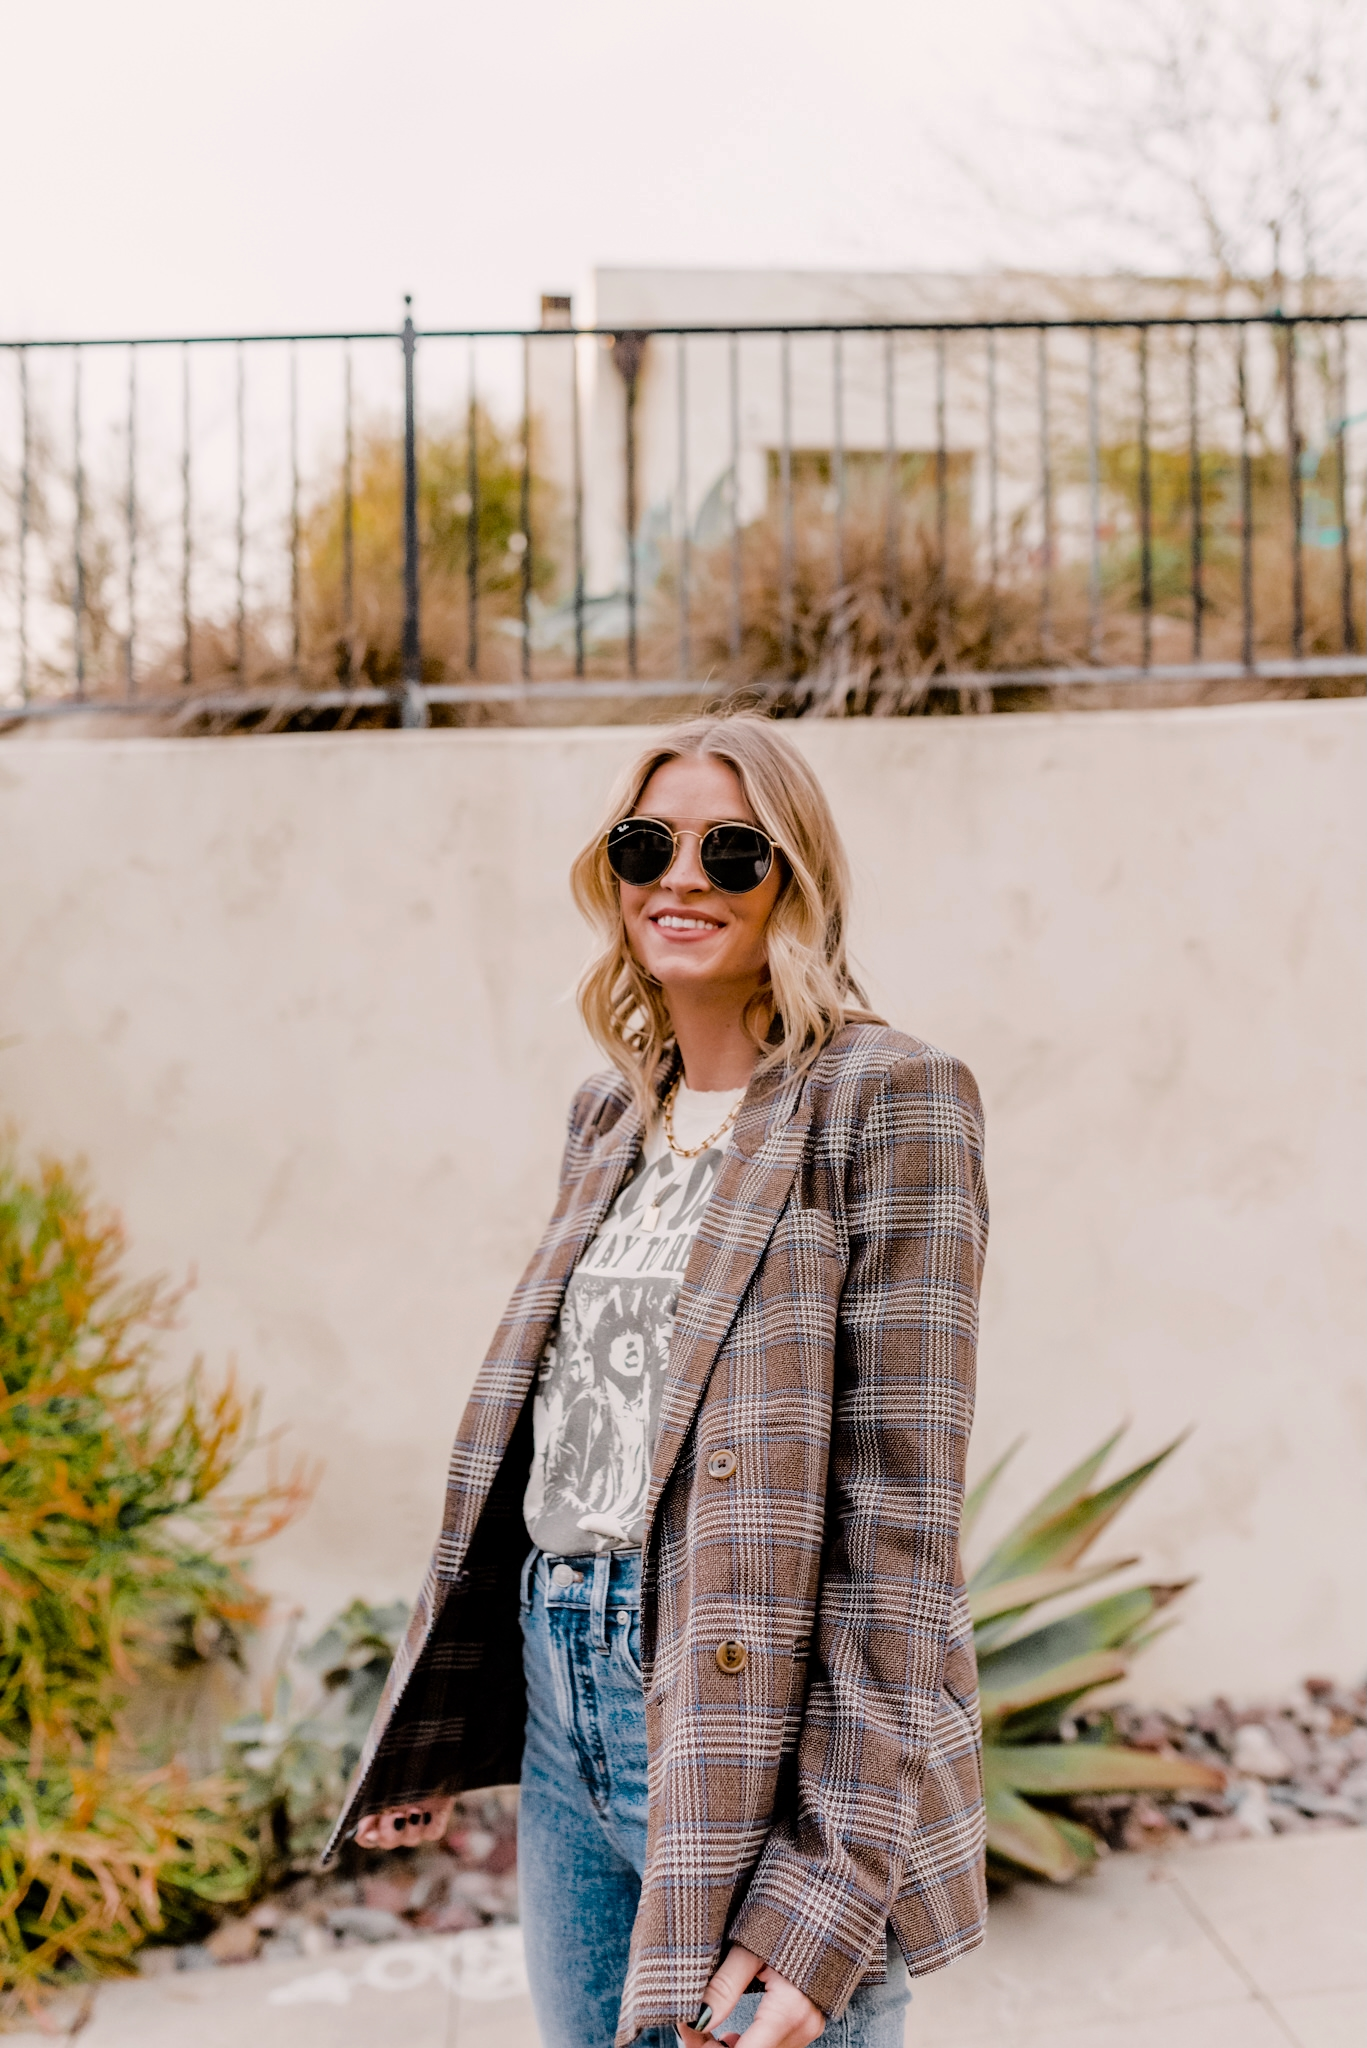 top lug sole boots | Lug Sole Boots by popular San Diego fashion blog, Navy Grace: image of Camilla Thurman wearing a AC/DC Graphic Tee, Similar Blazer Jacket, Marc Fisher Lug Sole Boots, Denim, and Sunglasses.